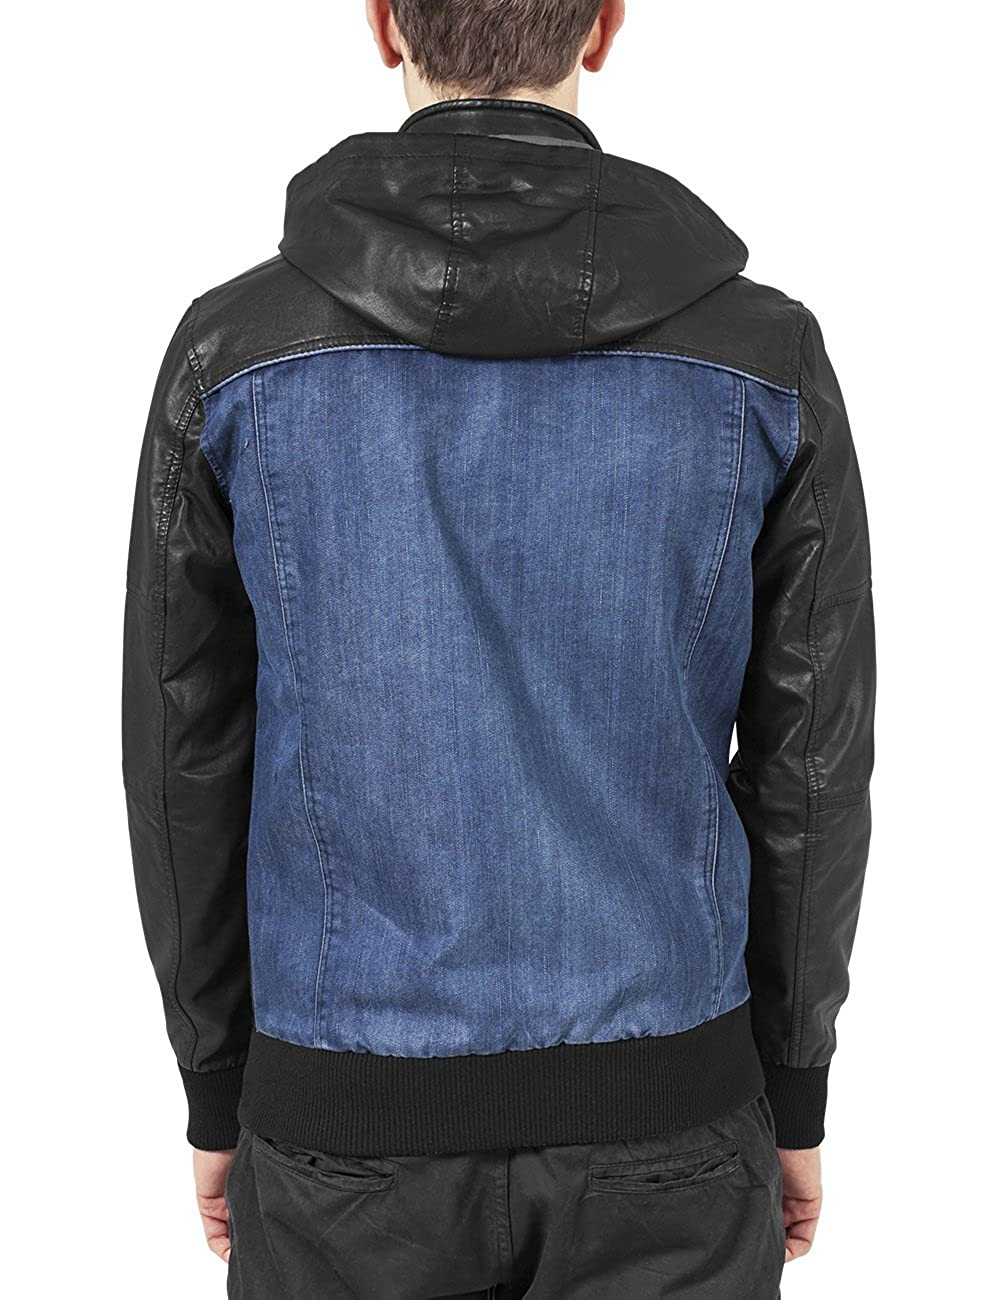 Urban Classics Mens Hooded Denim Leather Jacket at Amazon Mens Clothing store: